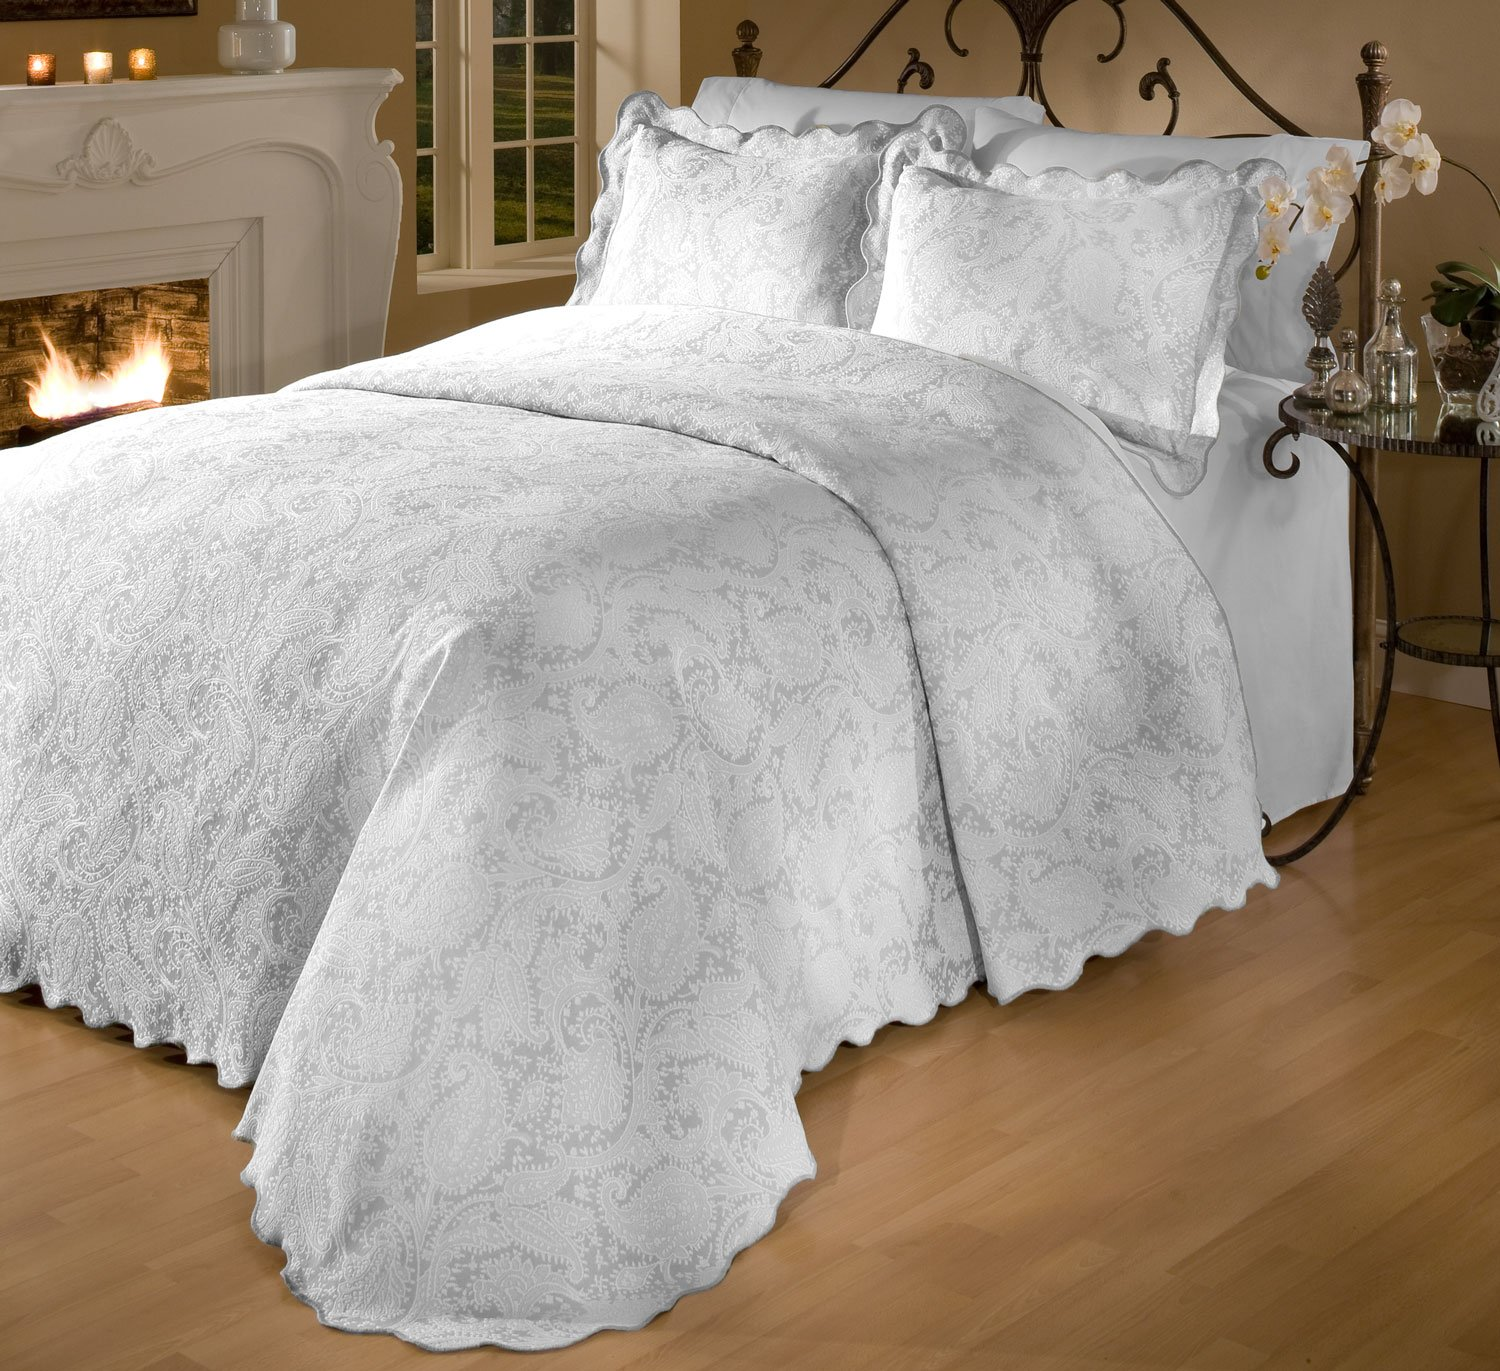 Perfect Amazon.com: RoyCroft Prada Portuguese Matelasse Bedspread/Sham Set, King  Size, White: Home U0026 Kitchen